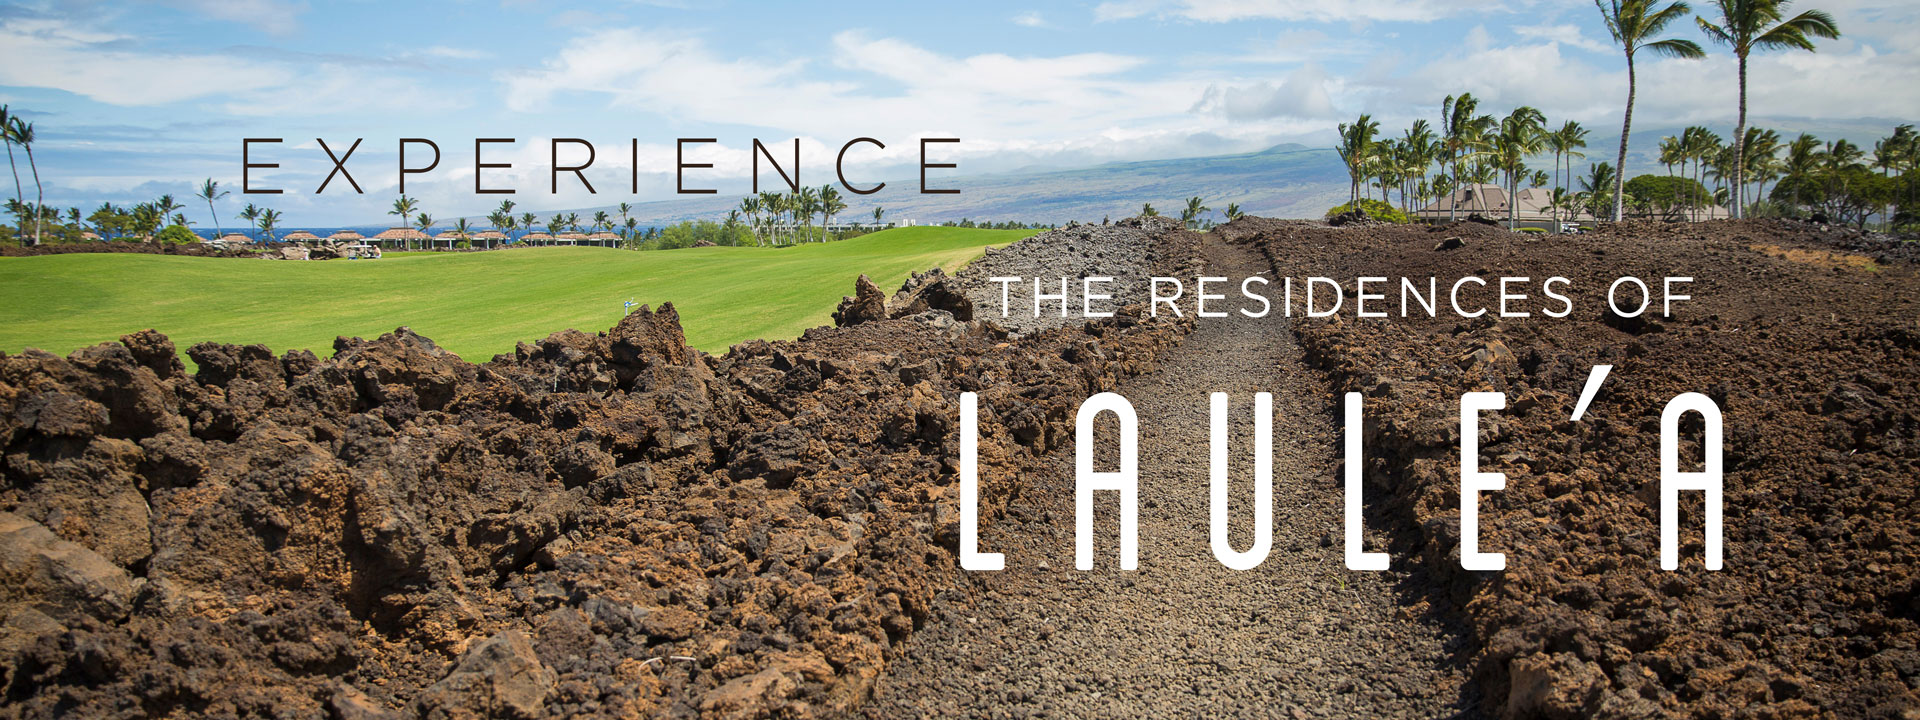 "Experience The Residences of Laule'a The Ala Kahakai Trail (AKA – ""The Kings Trail"")"